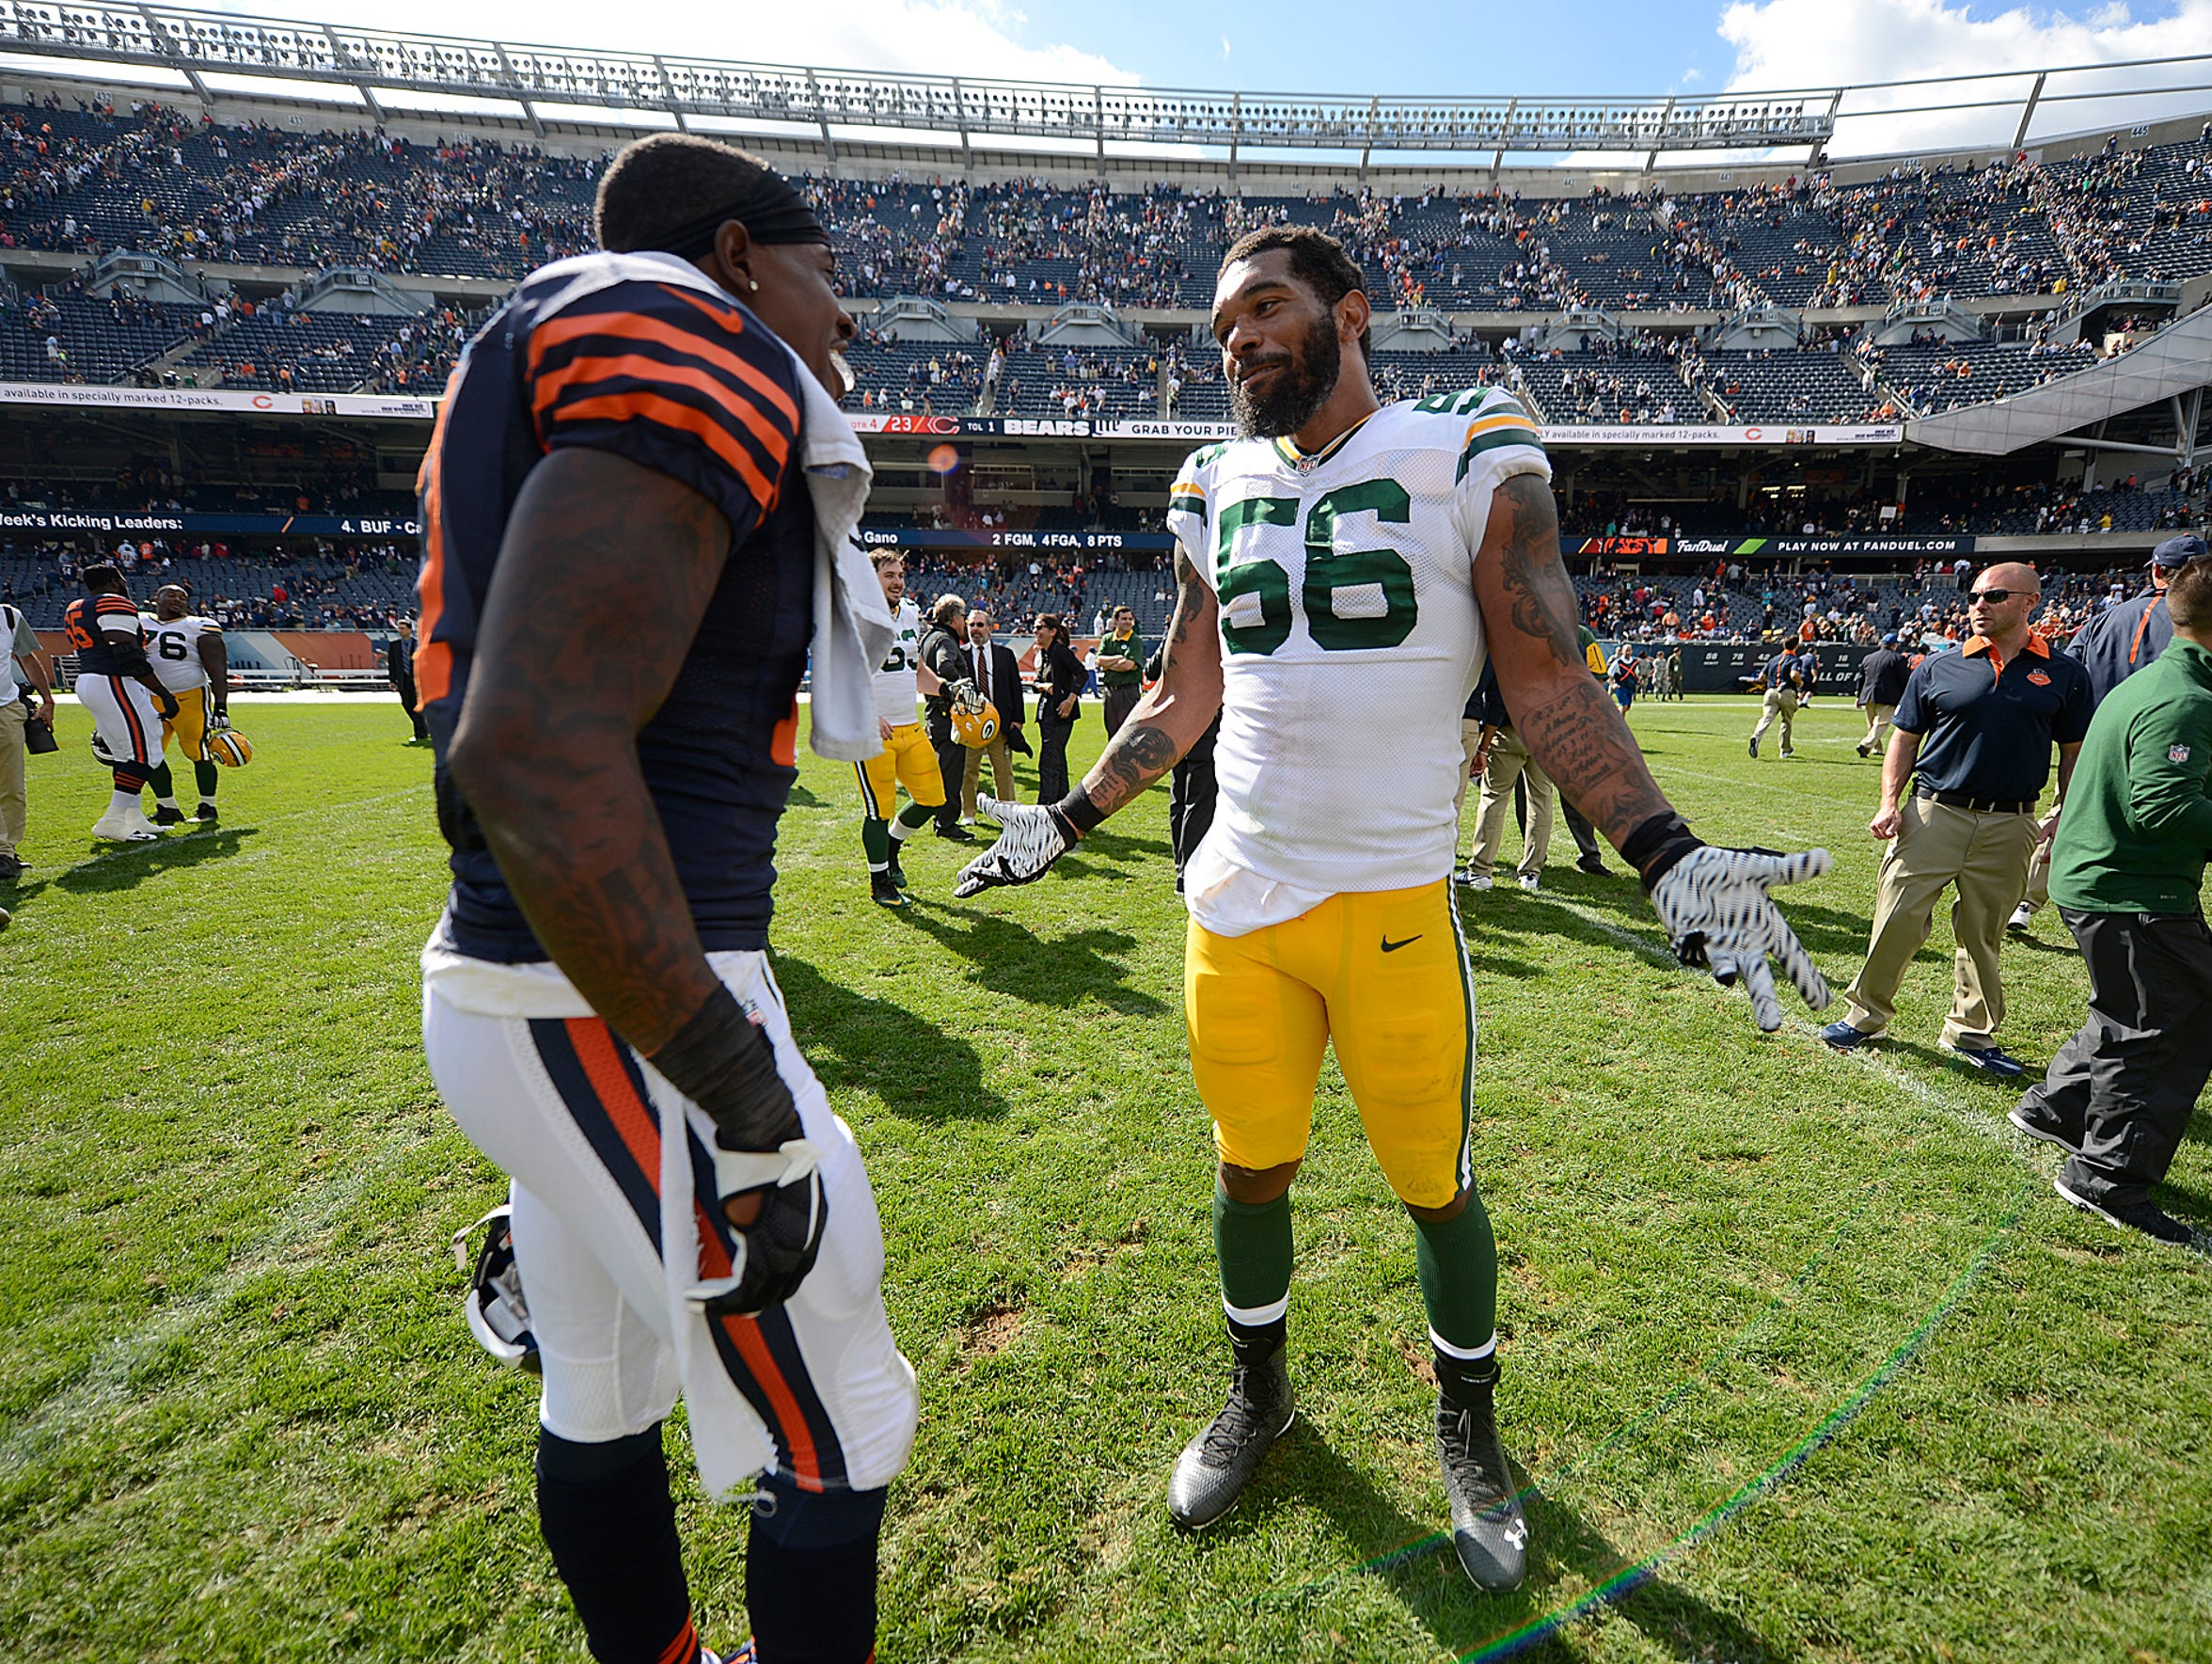 Green Bay Packers linebacker Julius Peppers has some